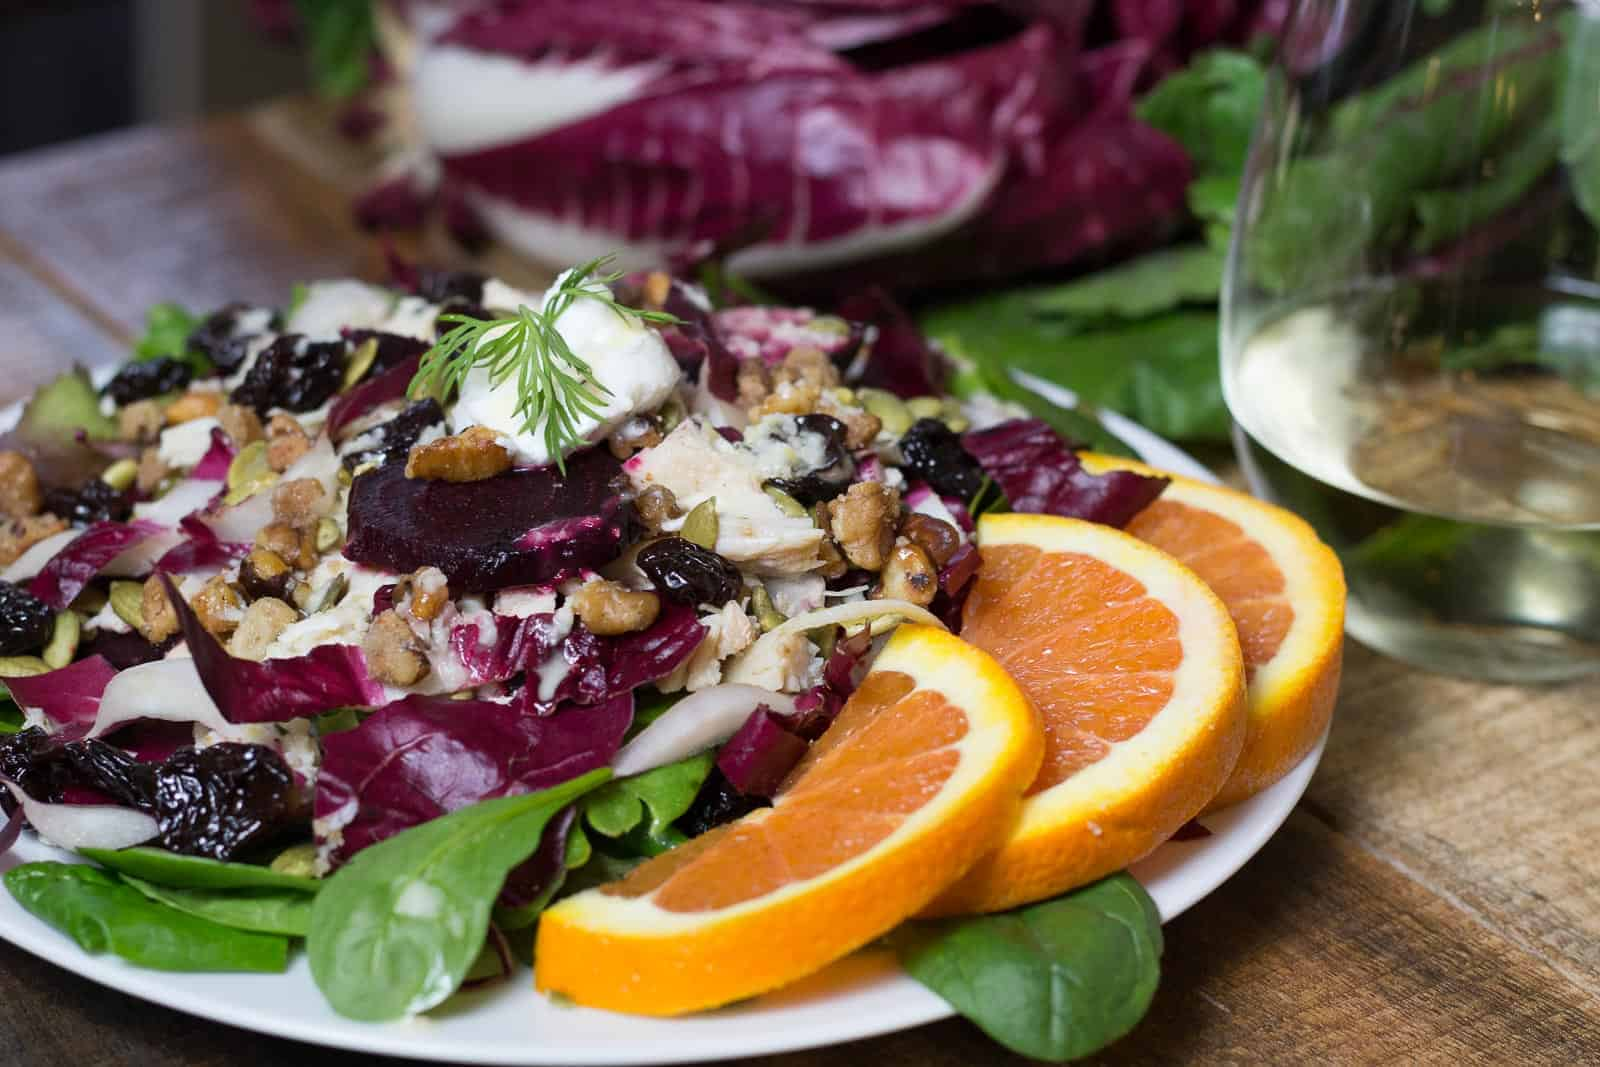 Chicken and roasted beet salad with oranges and wine